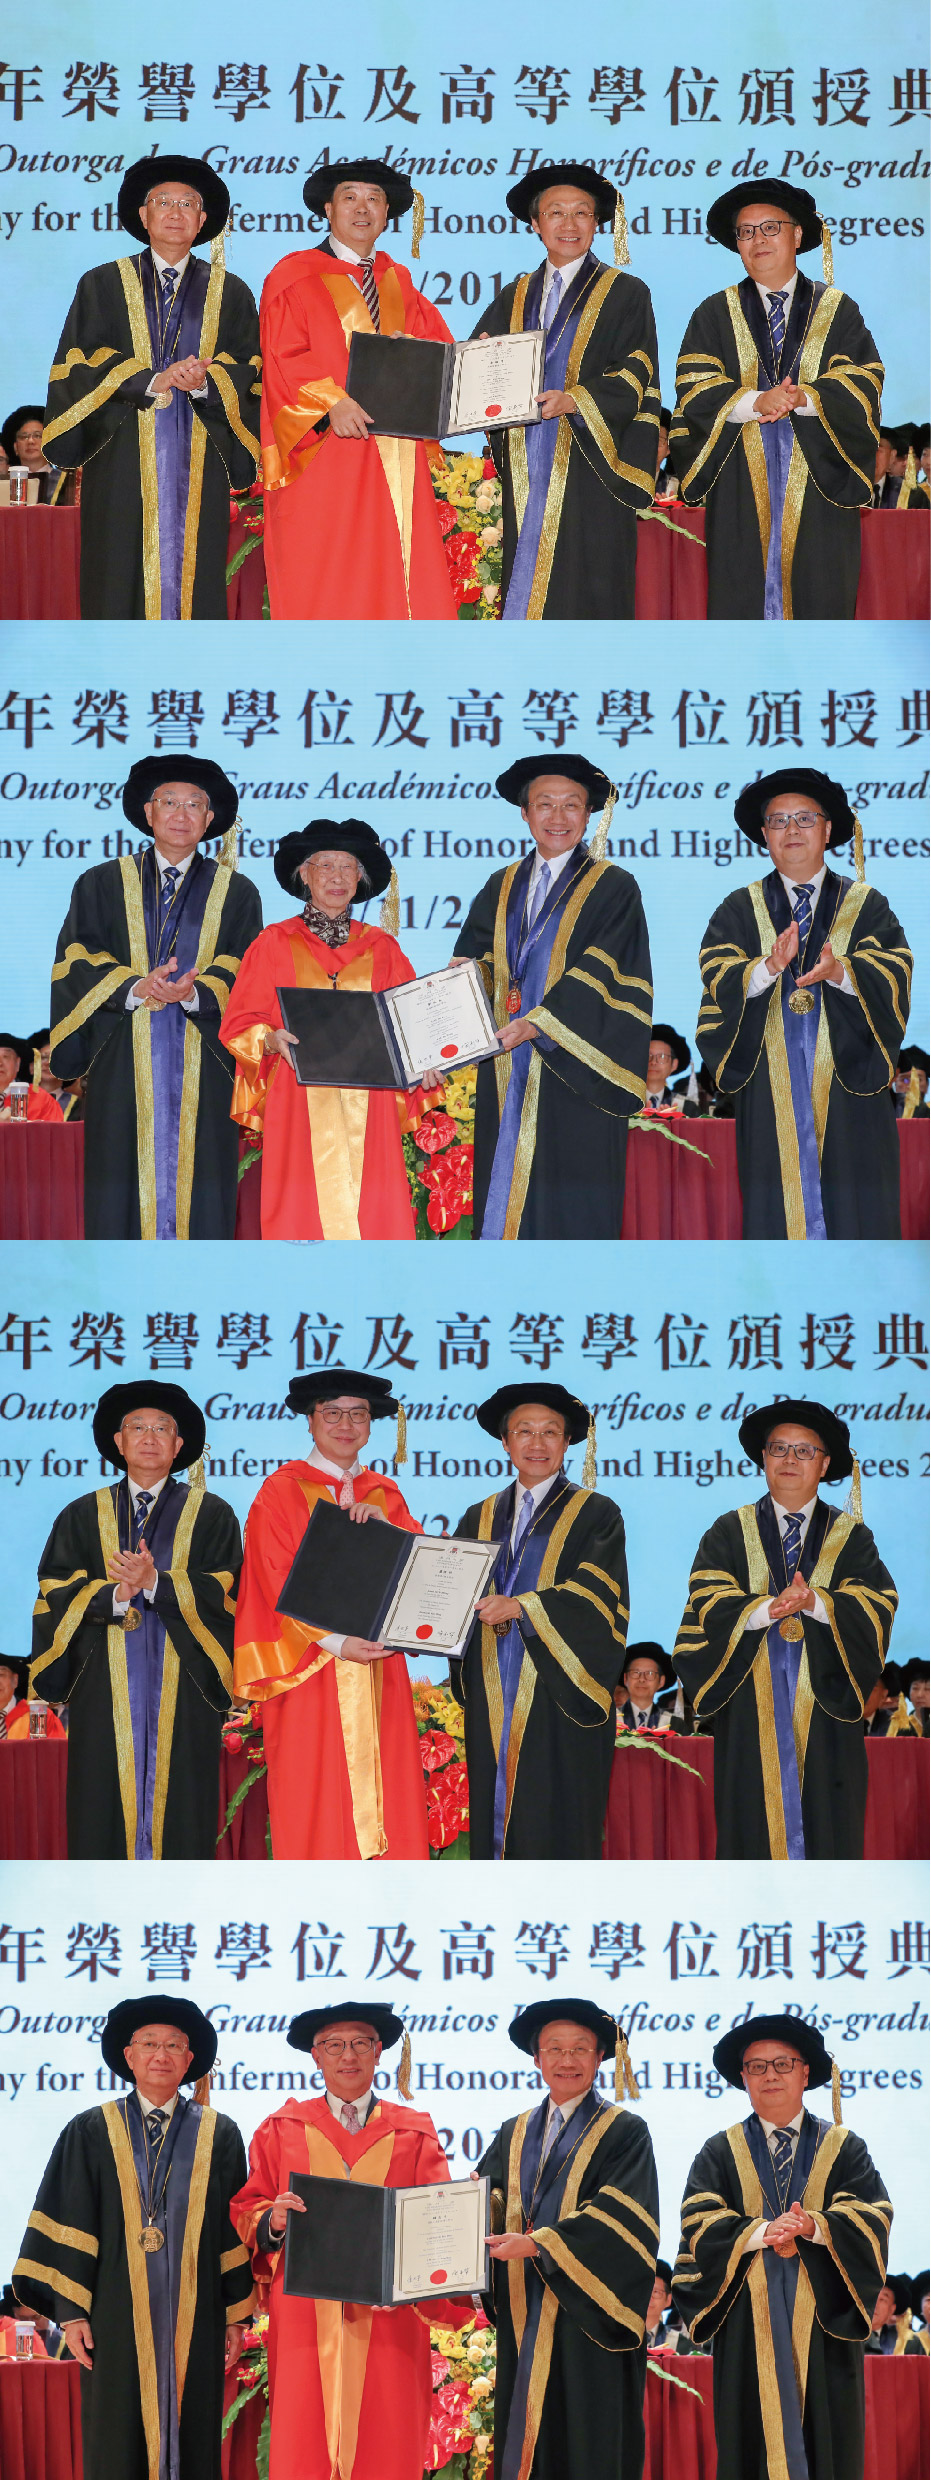 (Top to bottom) UM confers honorary doctorates on Qiao Xiaoyang, Lau Sin Peng, Dennis Lo Yuk Ming, and Roy Chung Chi Ping.